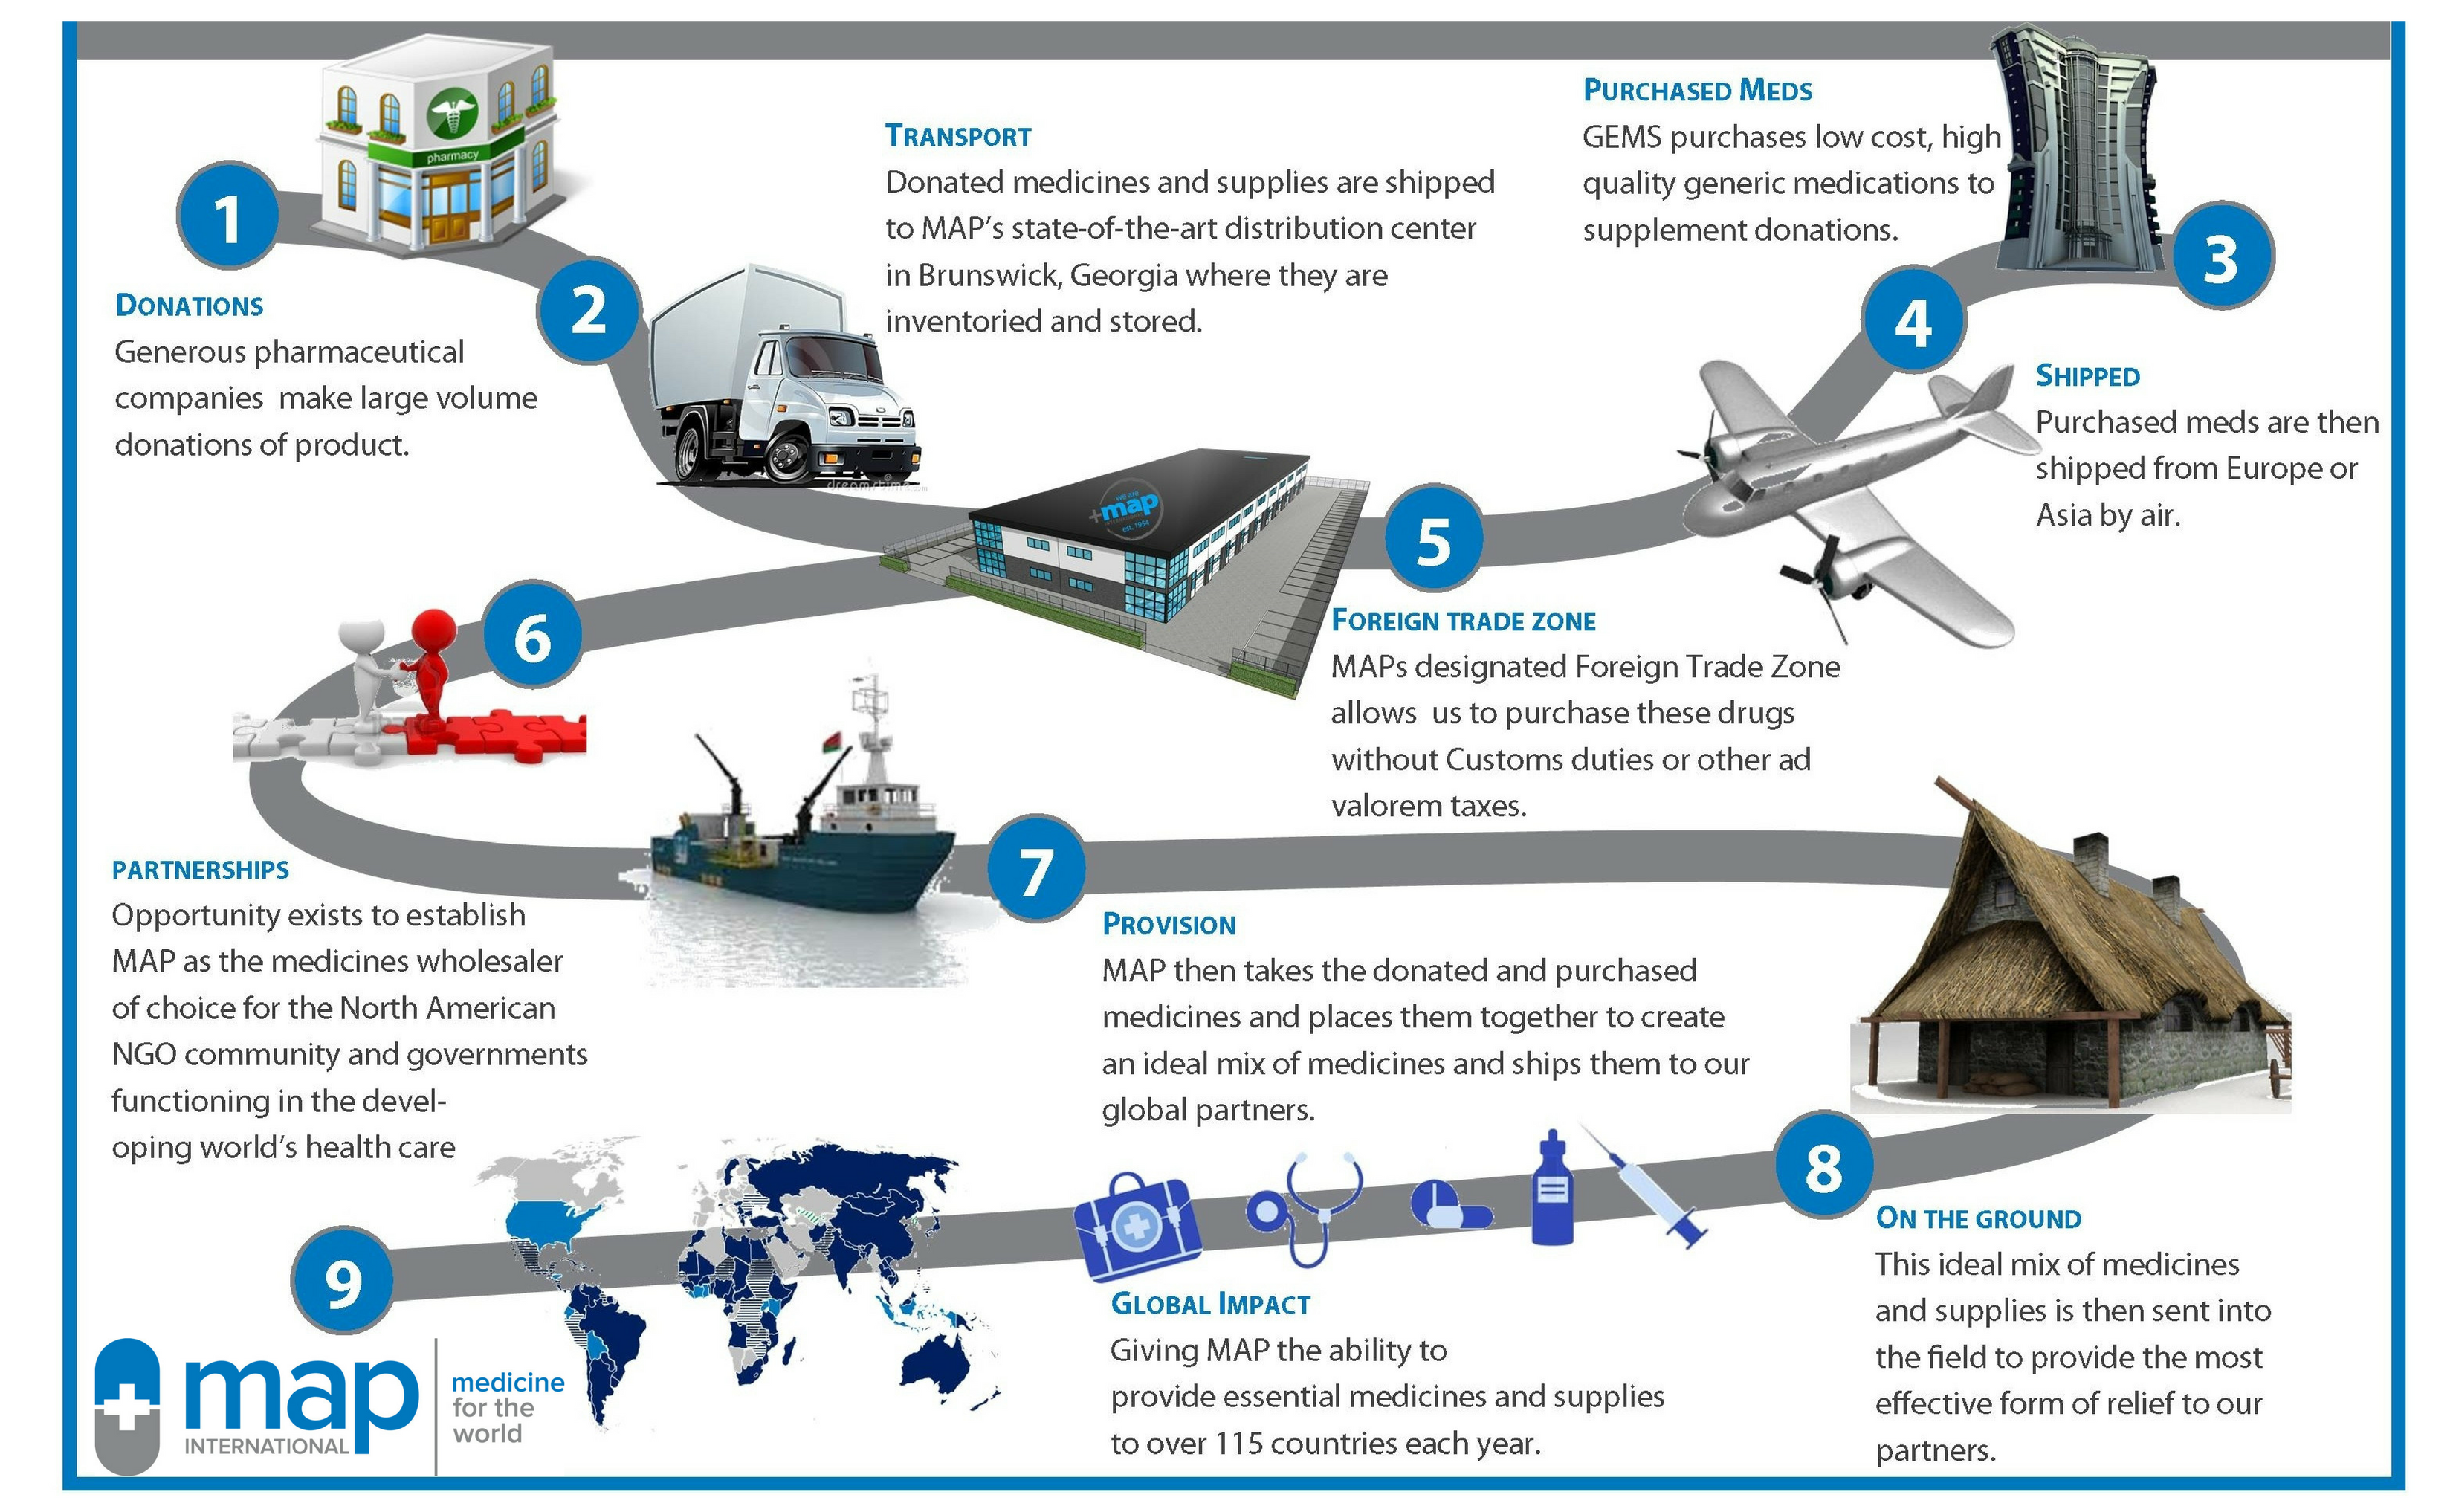 MAP_Medical_Supply_Chain_Infographic